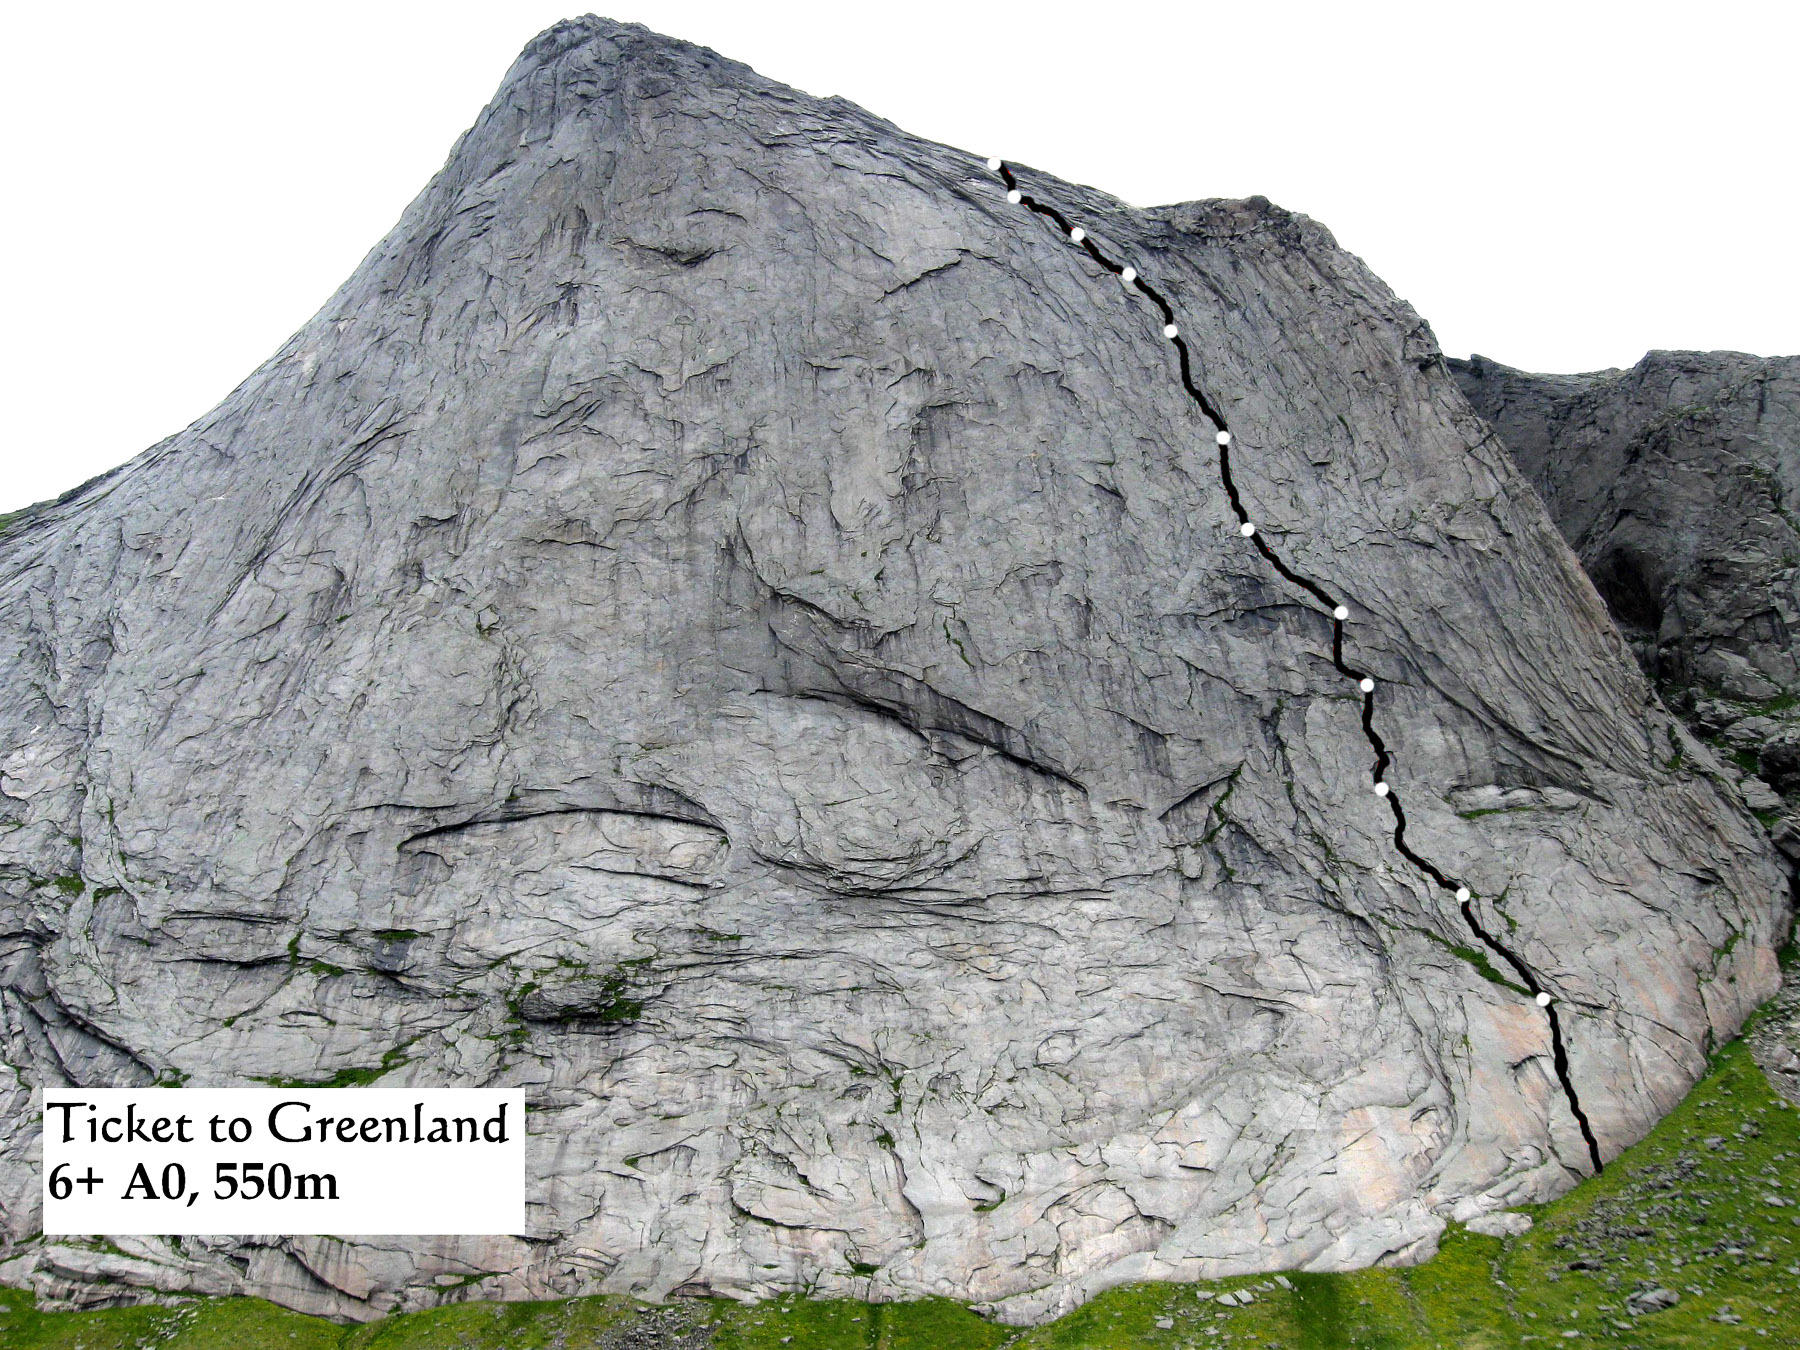 Ticket to Greenland on west face of Helvetestind (Hell's Wall). In 2009 Russian team also added a big wall route at F6a and A2+/A3 directly beneath the highest point in this photo.